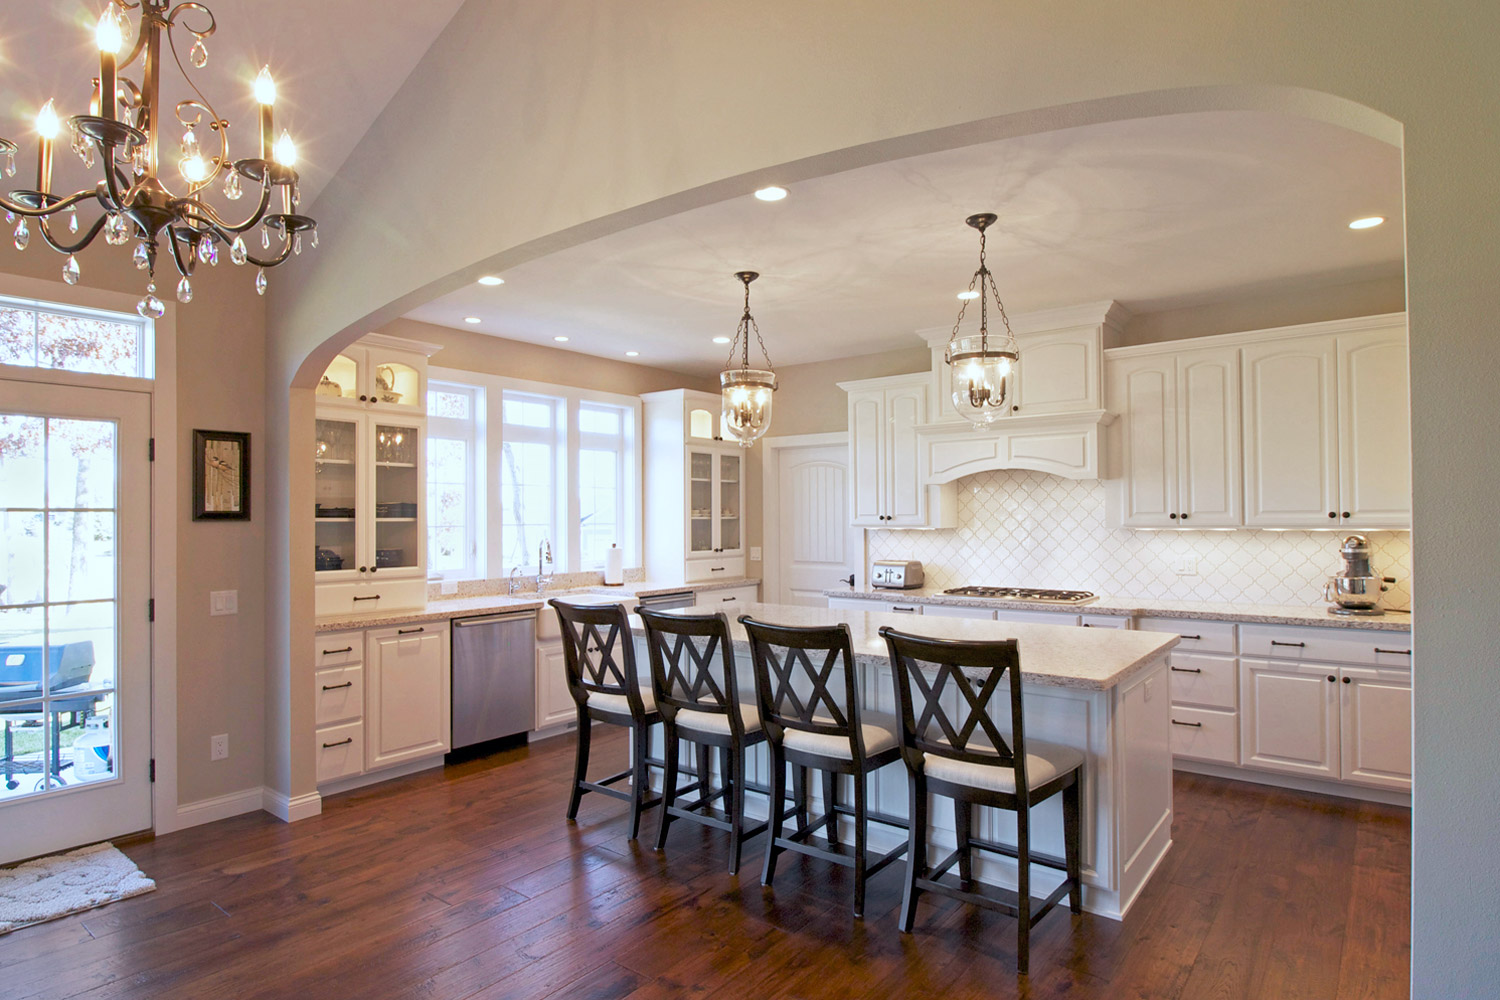 French Country Kitchen Degnan Design Build Remodel